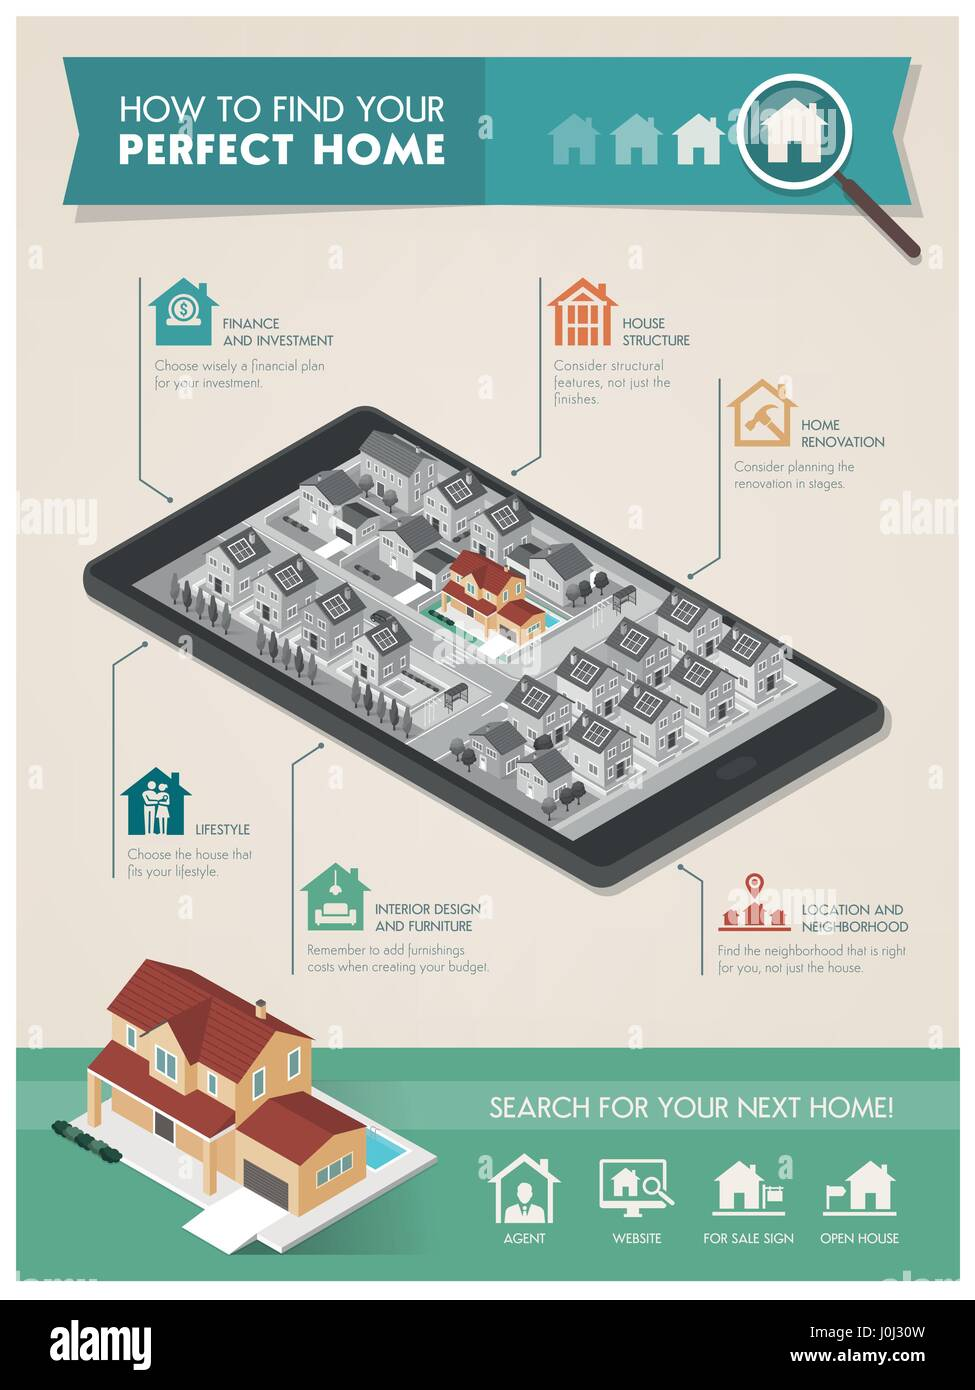 How To Find Your Perfect Homegraphic, Residential Area On A Smartphone And  Icons; How